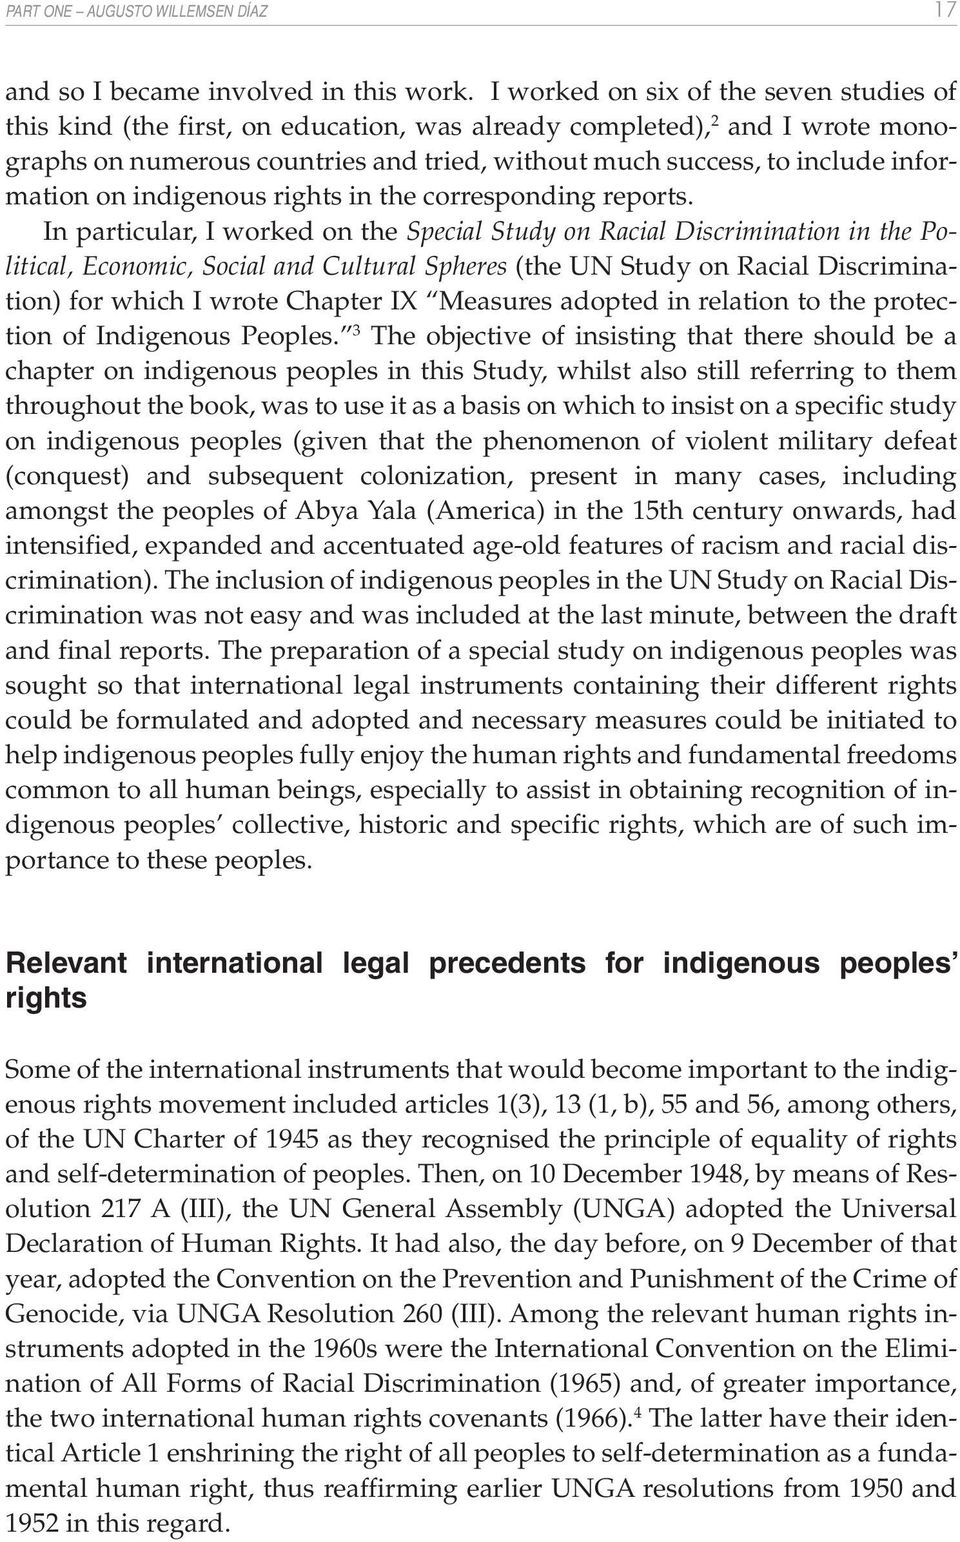 information on indigenous rights in the corresponding reports.